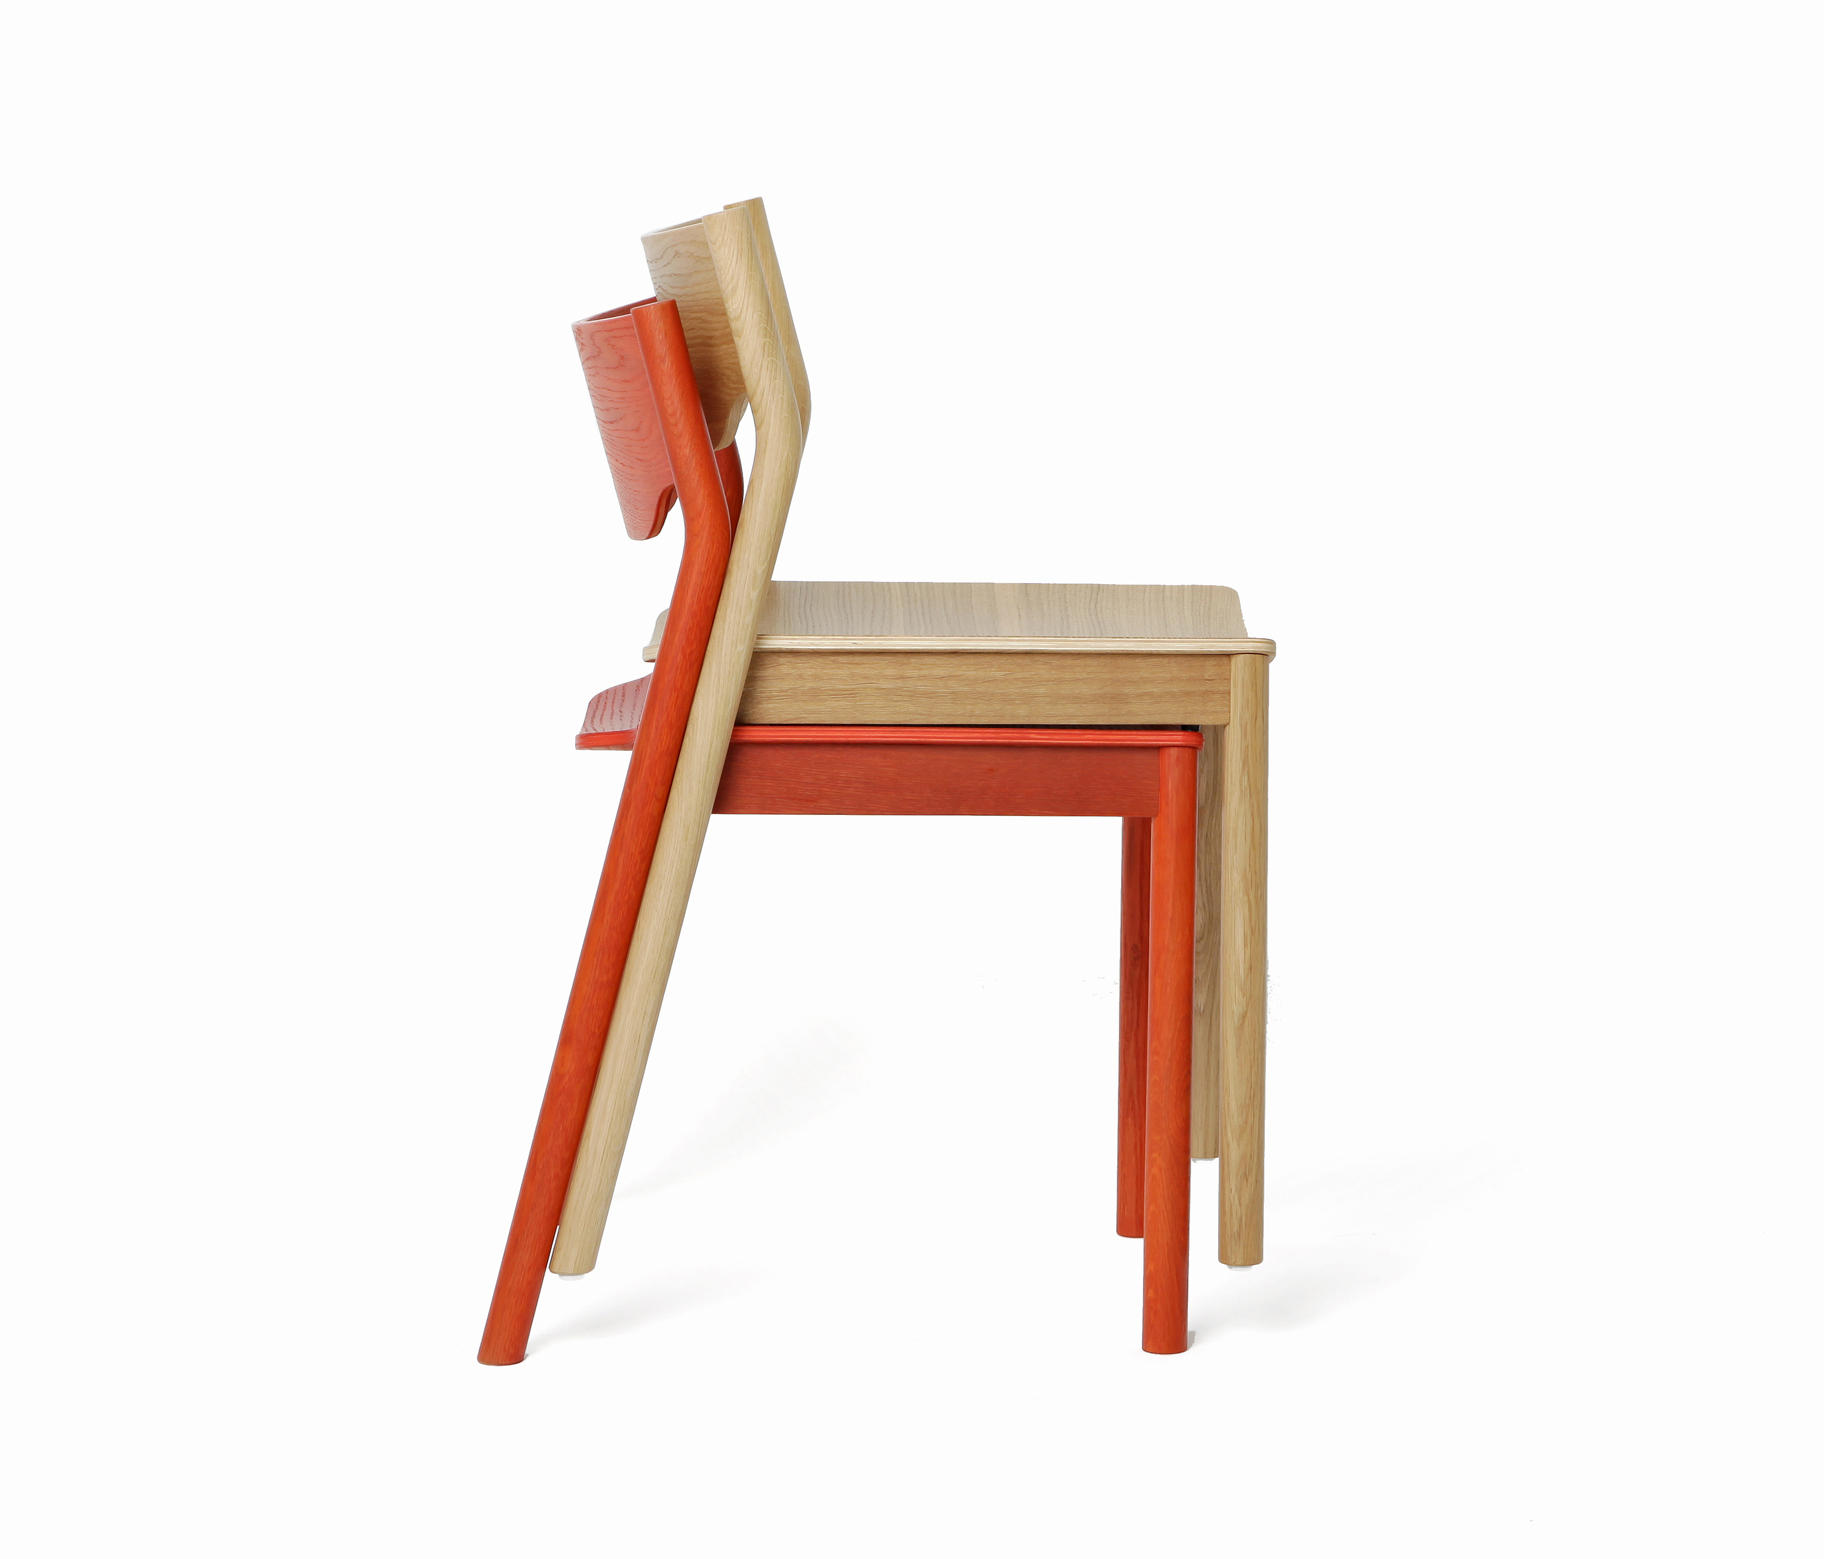 Tangerine Chair By Resident · Tangerine Chair By Resident ...